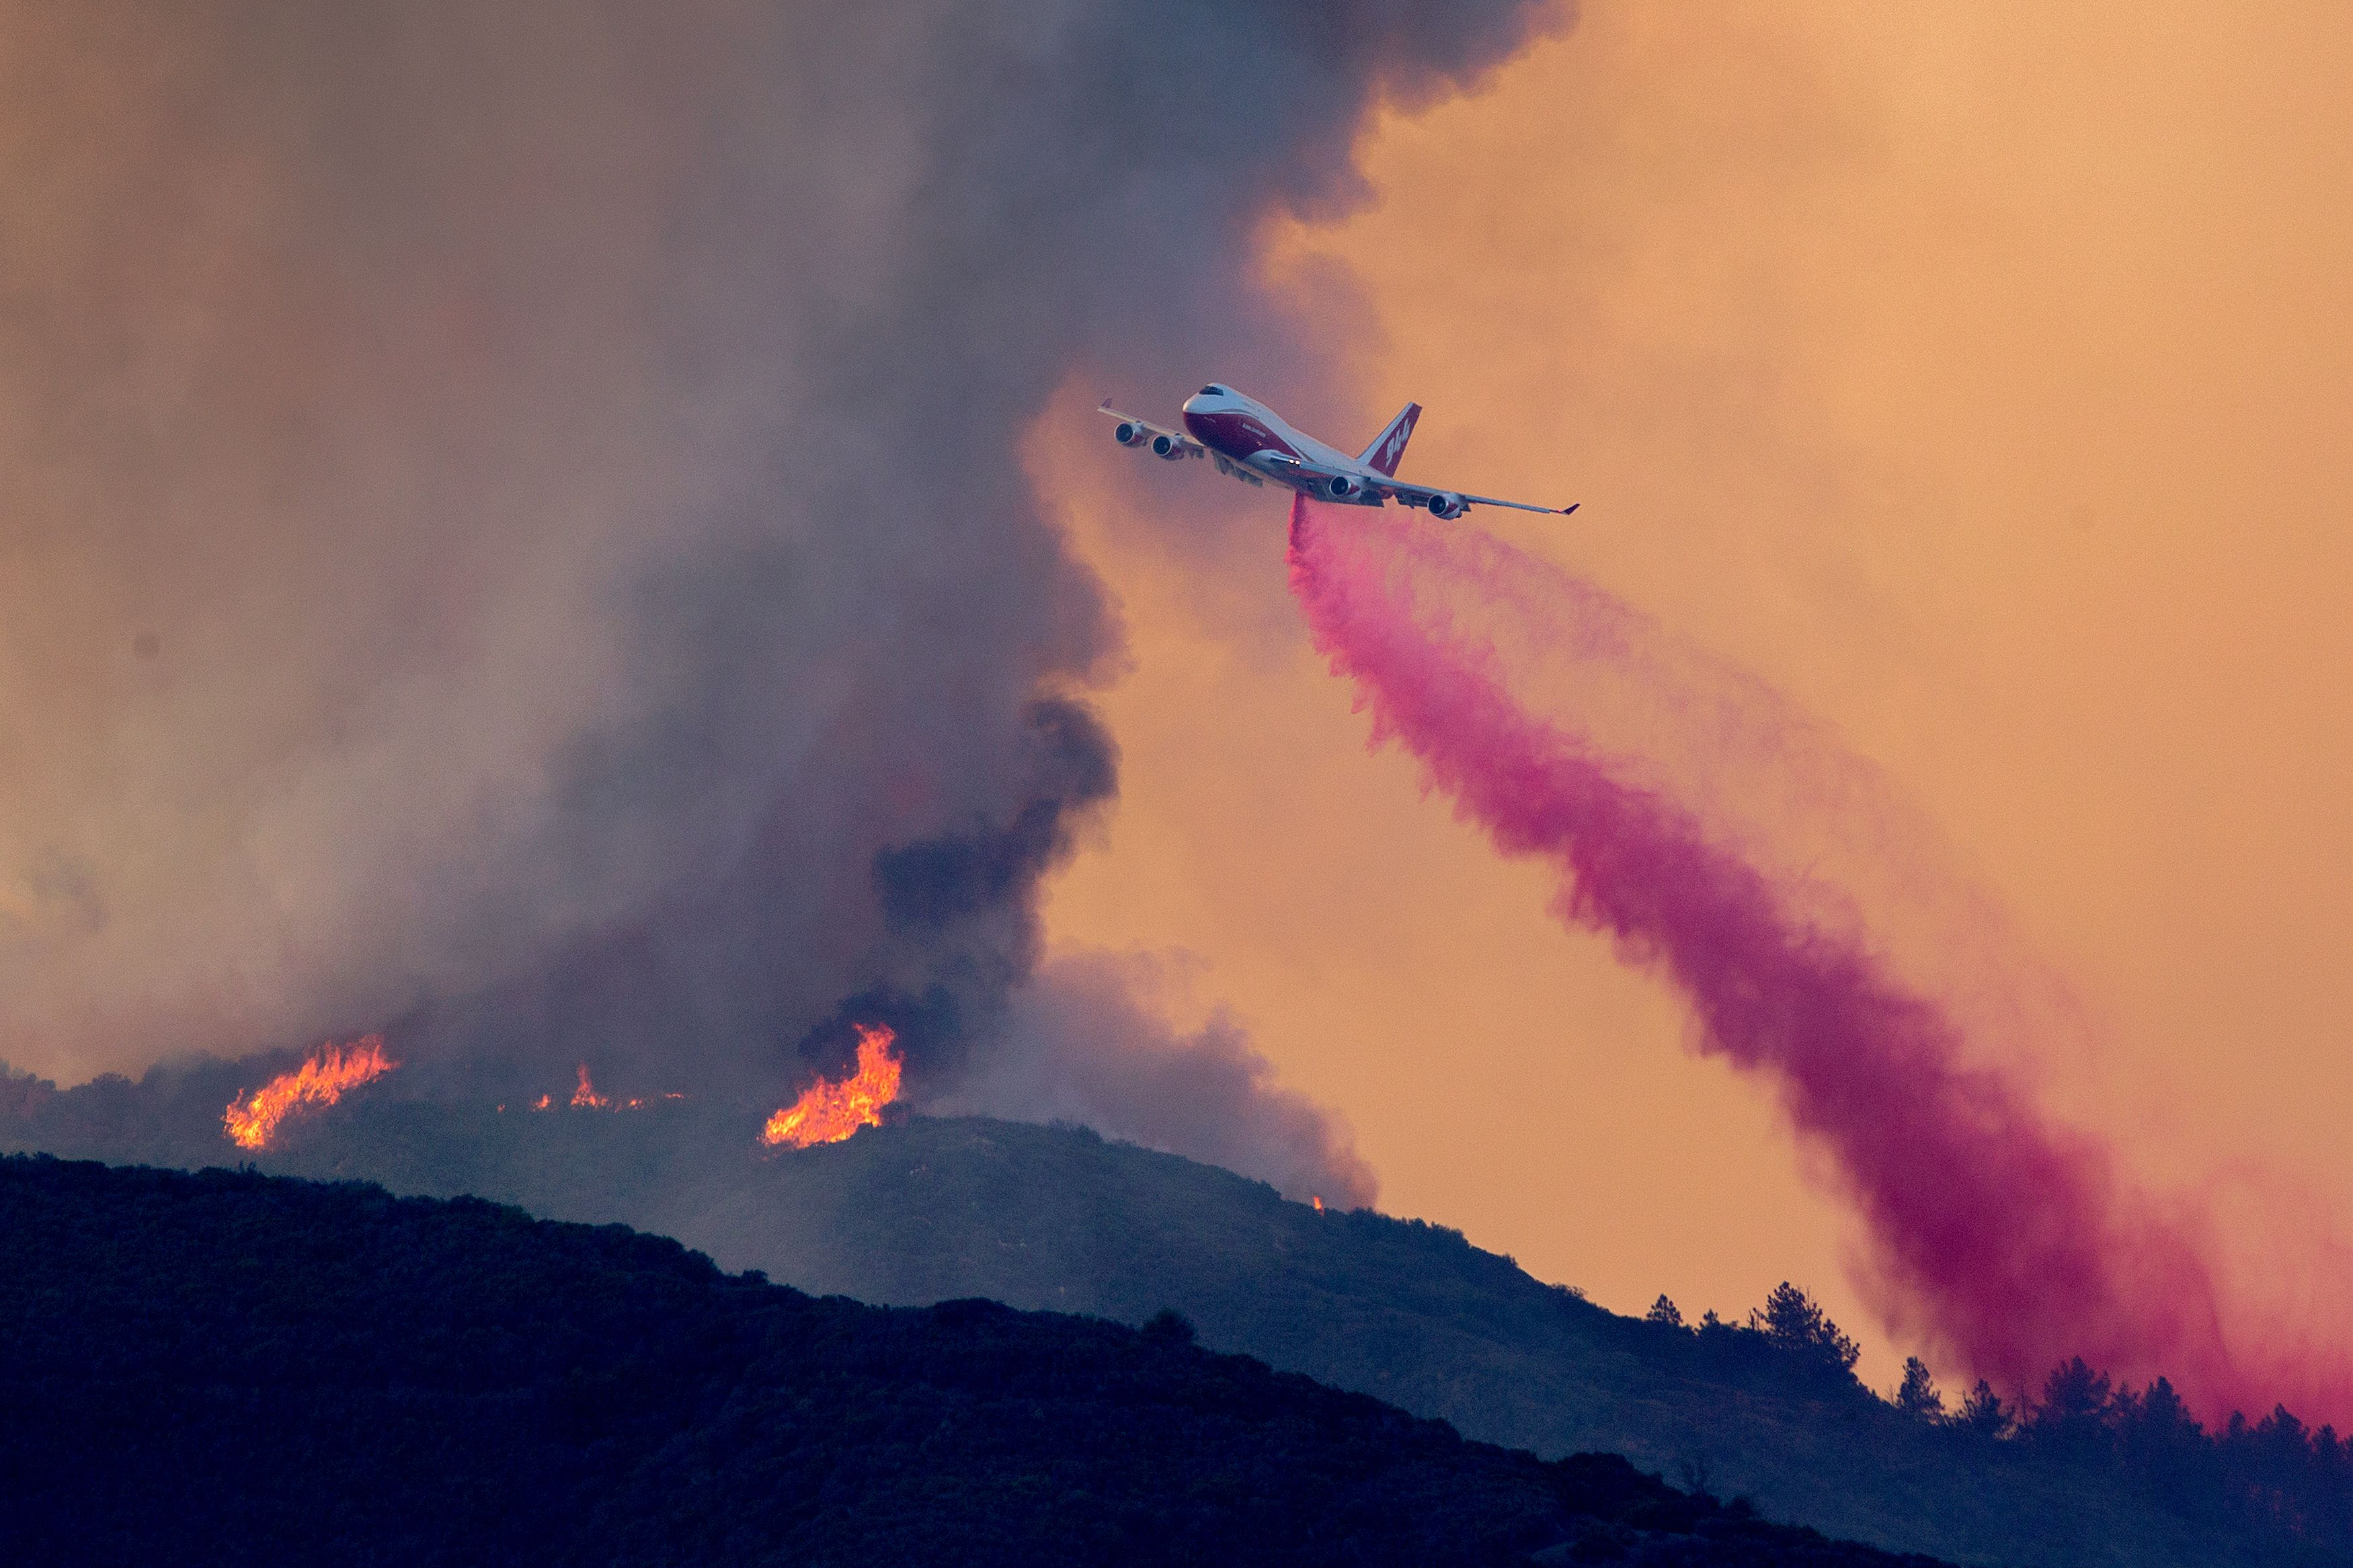 "<div class=""meta image-caption""><div class=""origin-logo origin-image none""><span>none</span></div><span class=""caption-text"">A 747 Global Supertanker jet drops fire retardant at the Holy Fire near Lake Elsinore, in Orange County, California, on August 7, 2018. (DAVID MCNEW/AFP/Getty Images)</span></div>"